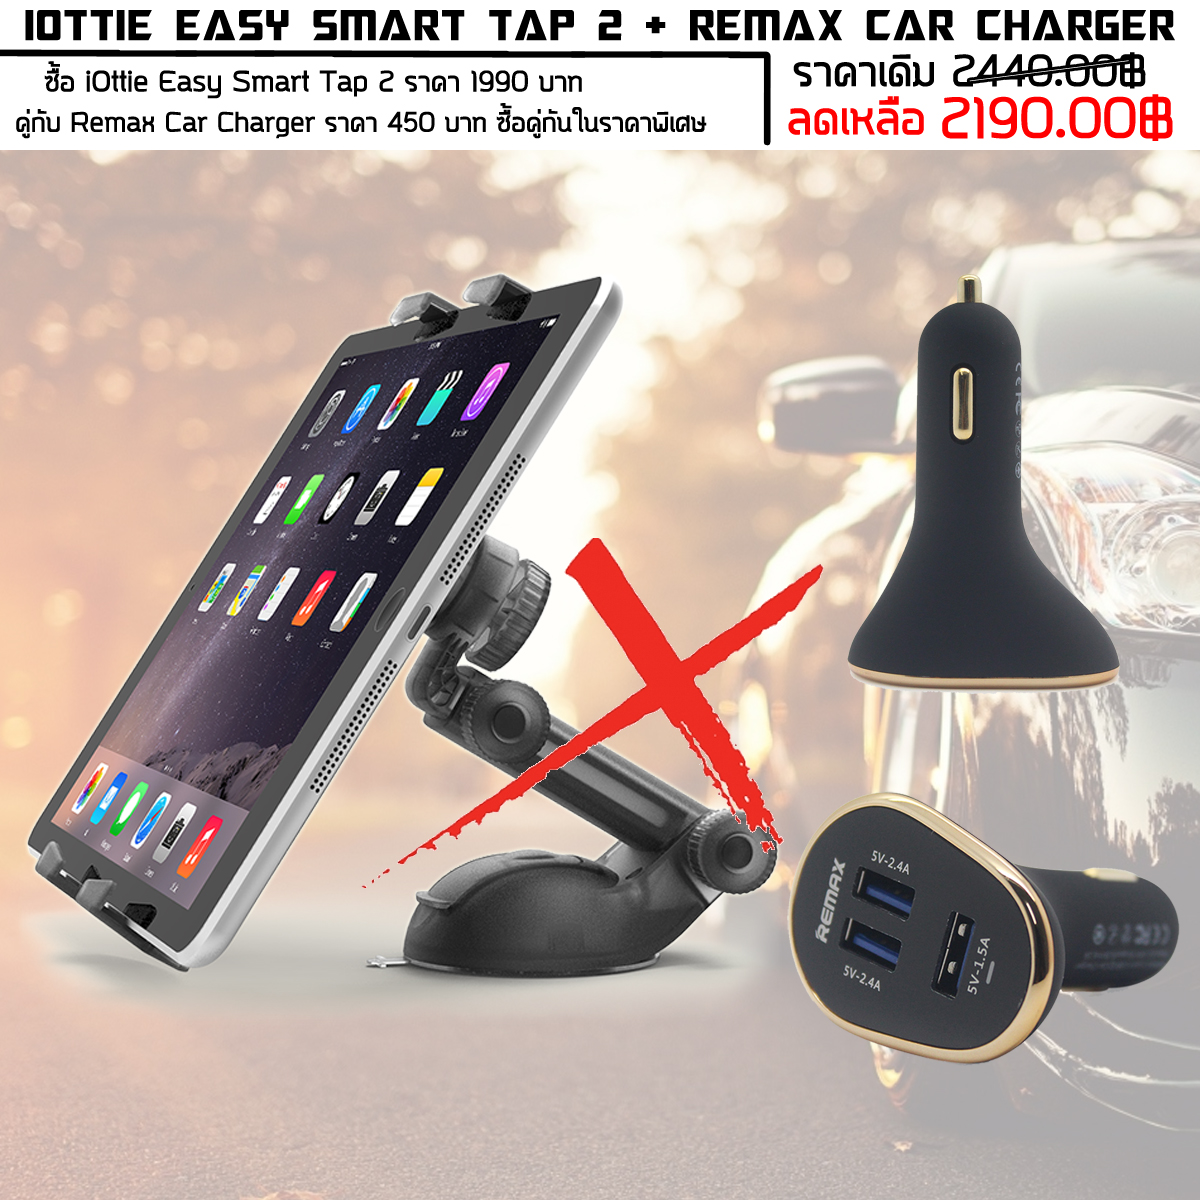 iOttie Easy Smart tap 2 + rEmAX Car Charger